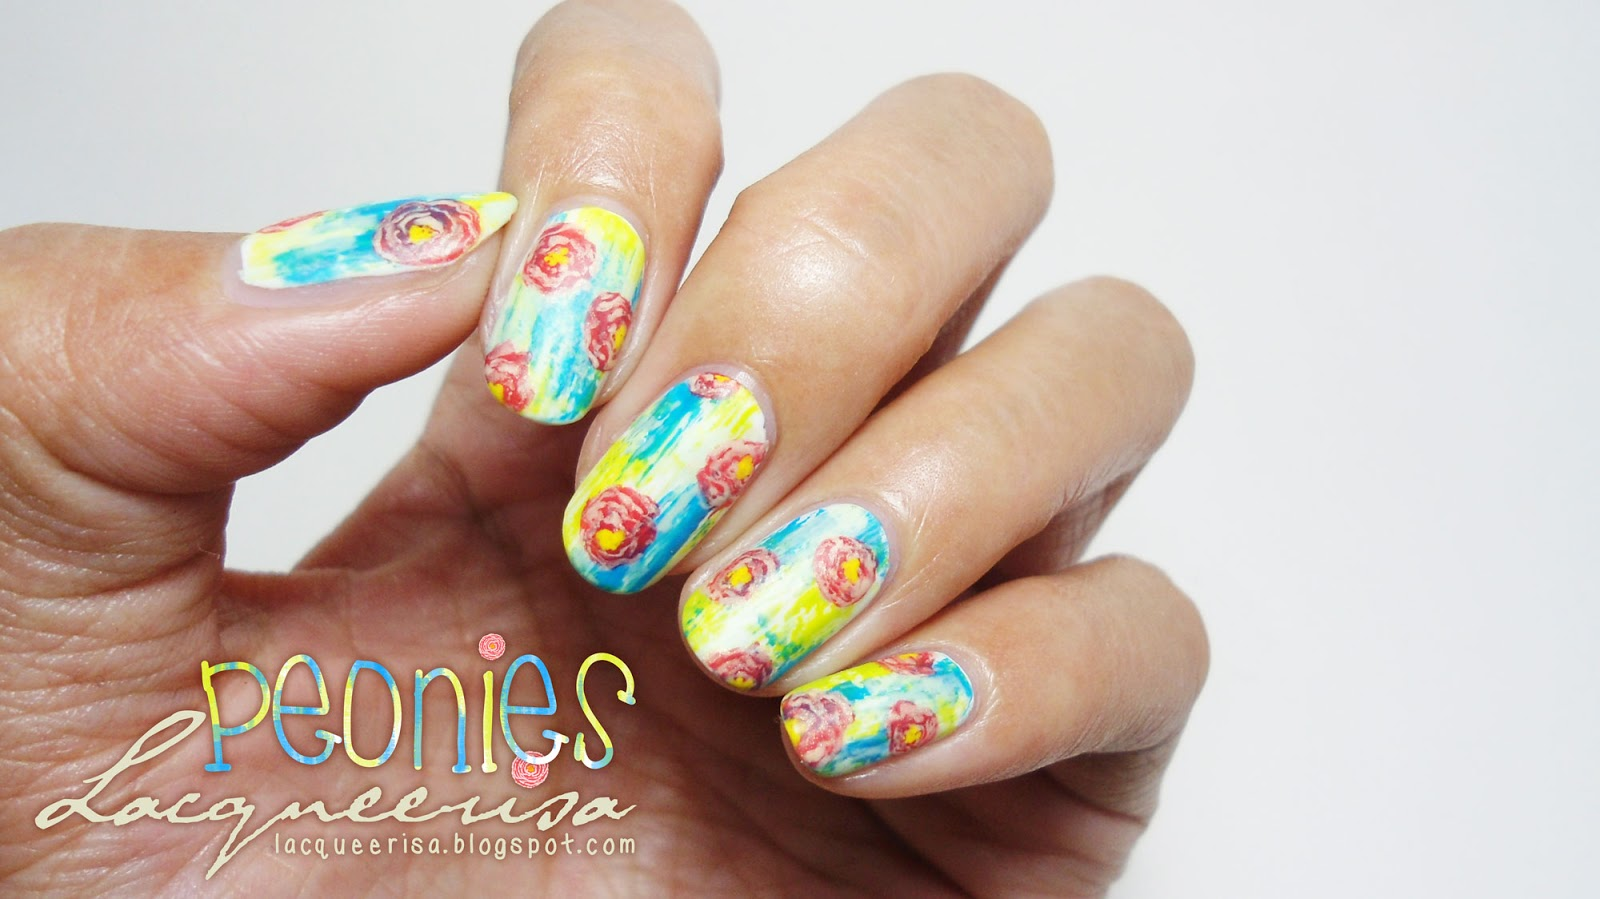 Lacqueerisa: Peonies Nails